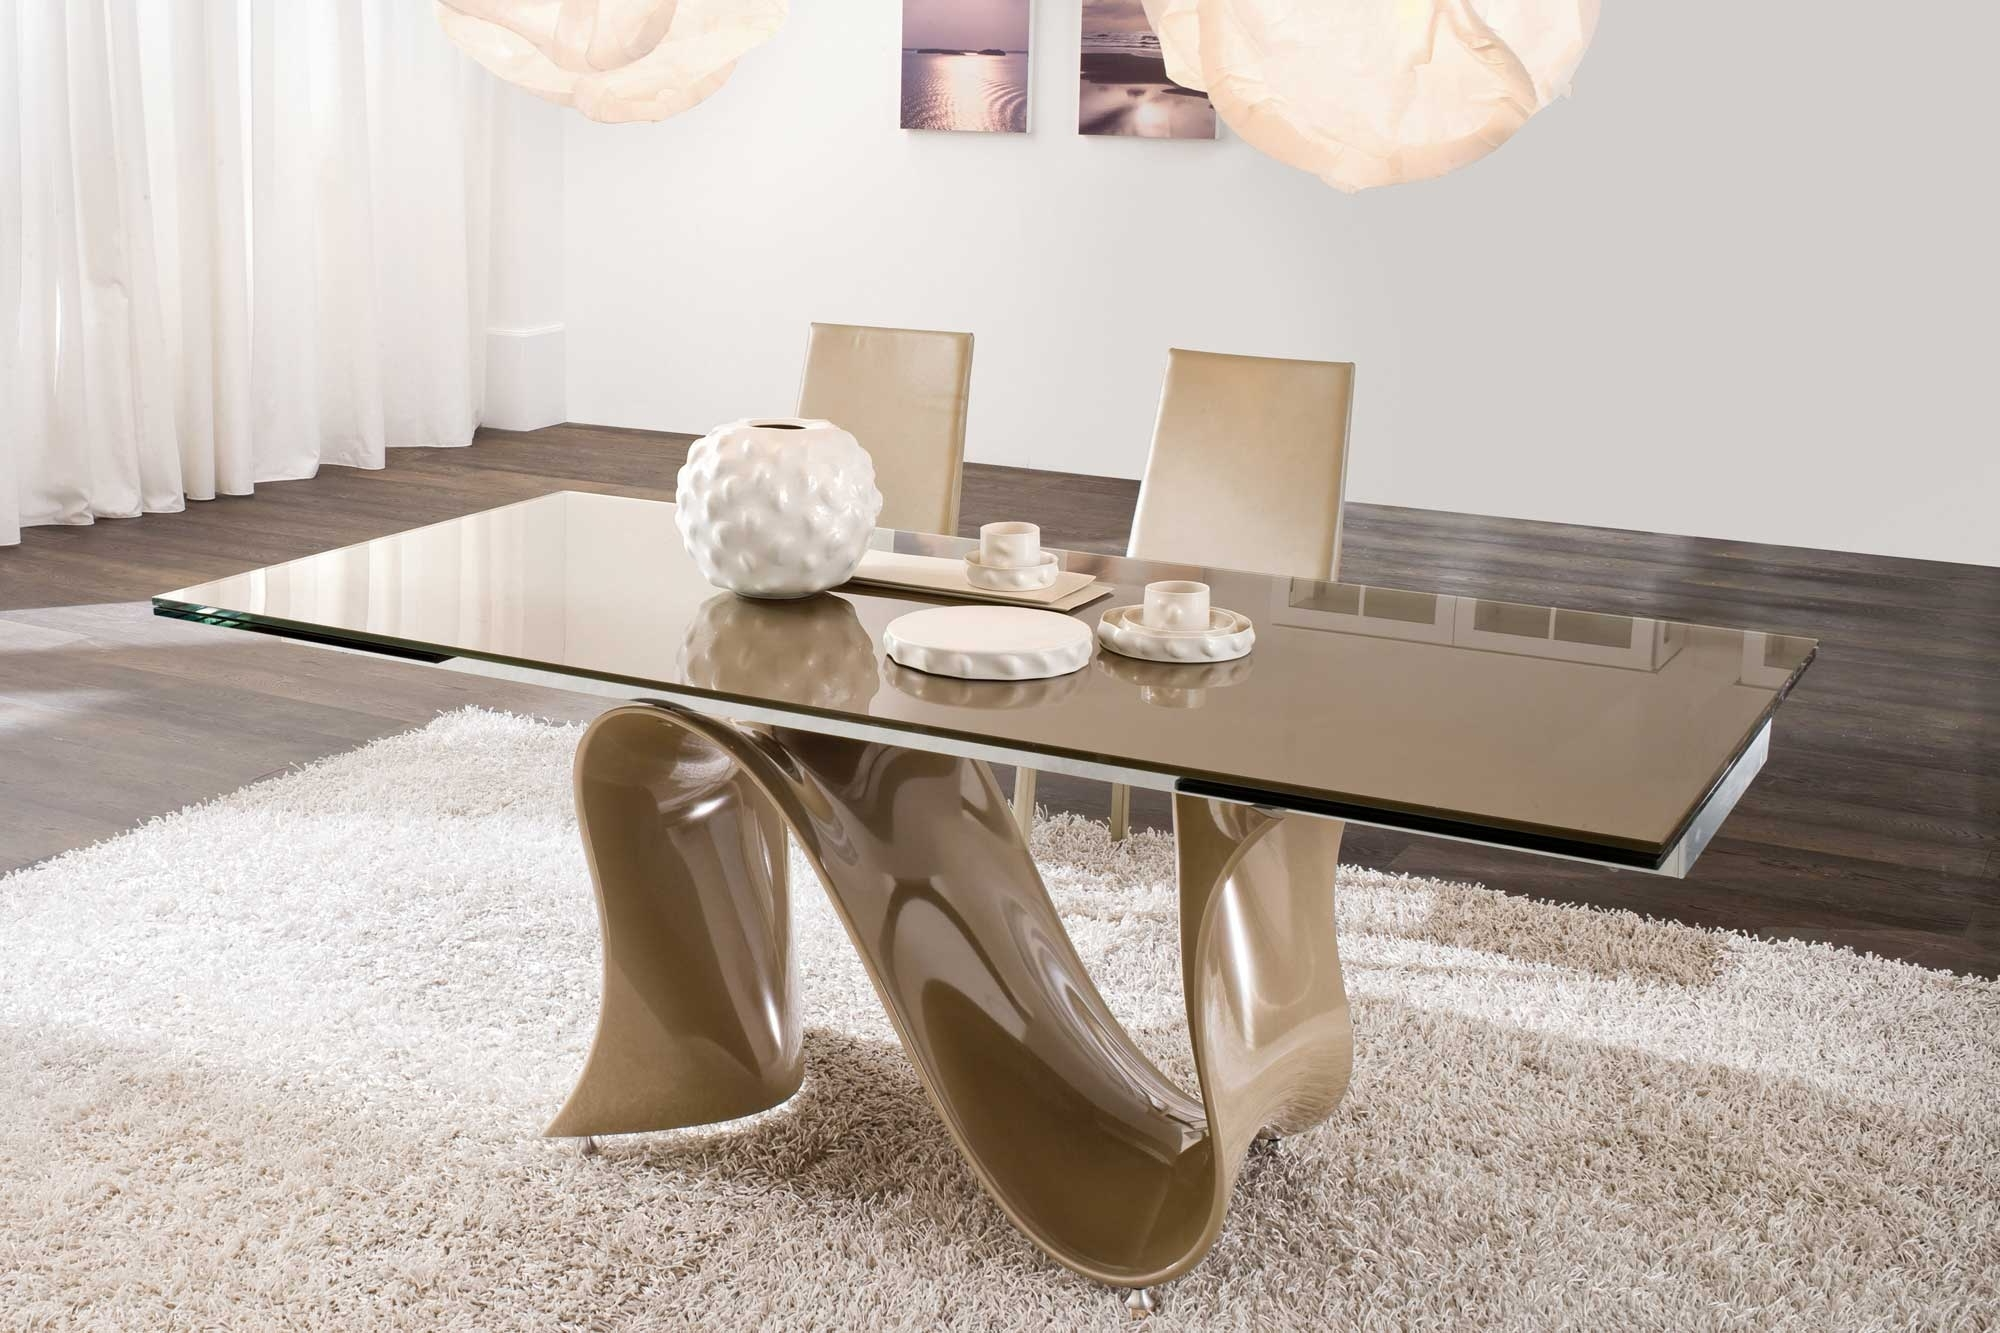 Most Recently Released Contemporary Base Dining Tables In Unique Modern Dining Table With Spiral Base Legs On White Area Fur (View 18 of 25)